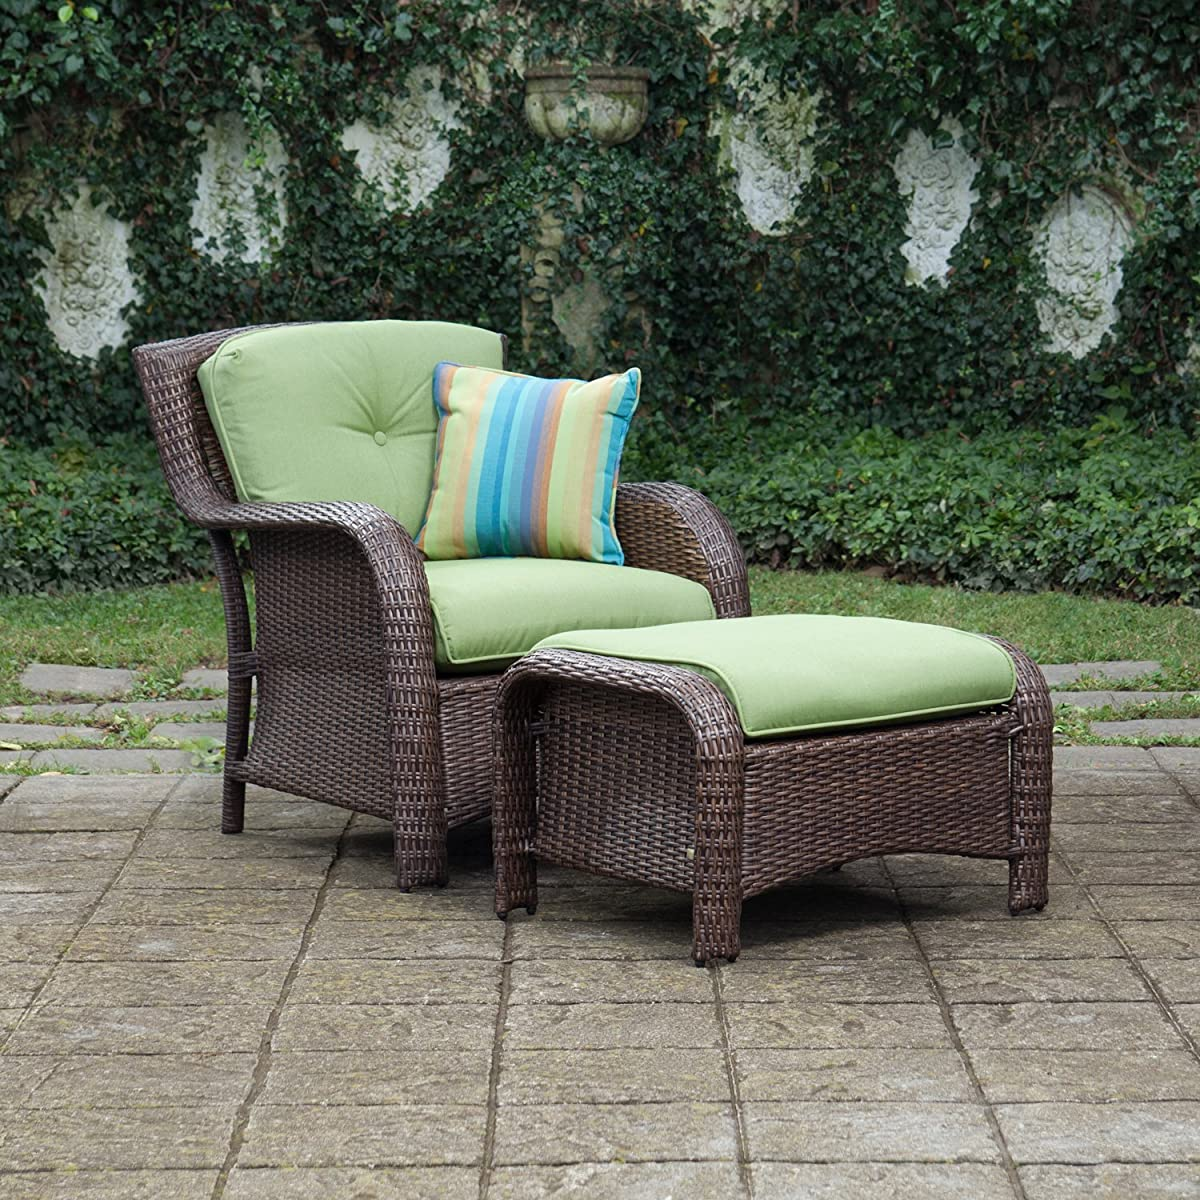 La-Z-Boy Outdoor Sawyer 6 Piece Resin Wicker Patio Furniture Conversation Set (Cilantro Green) With All Weather Sunbrella Cushions